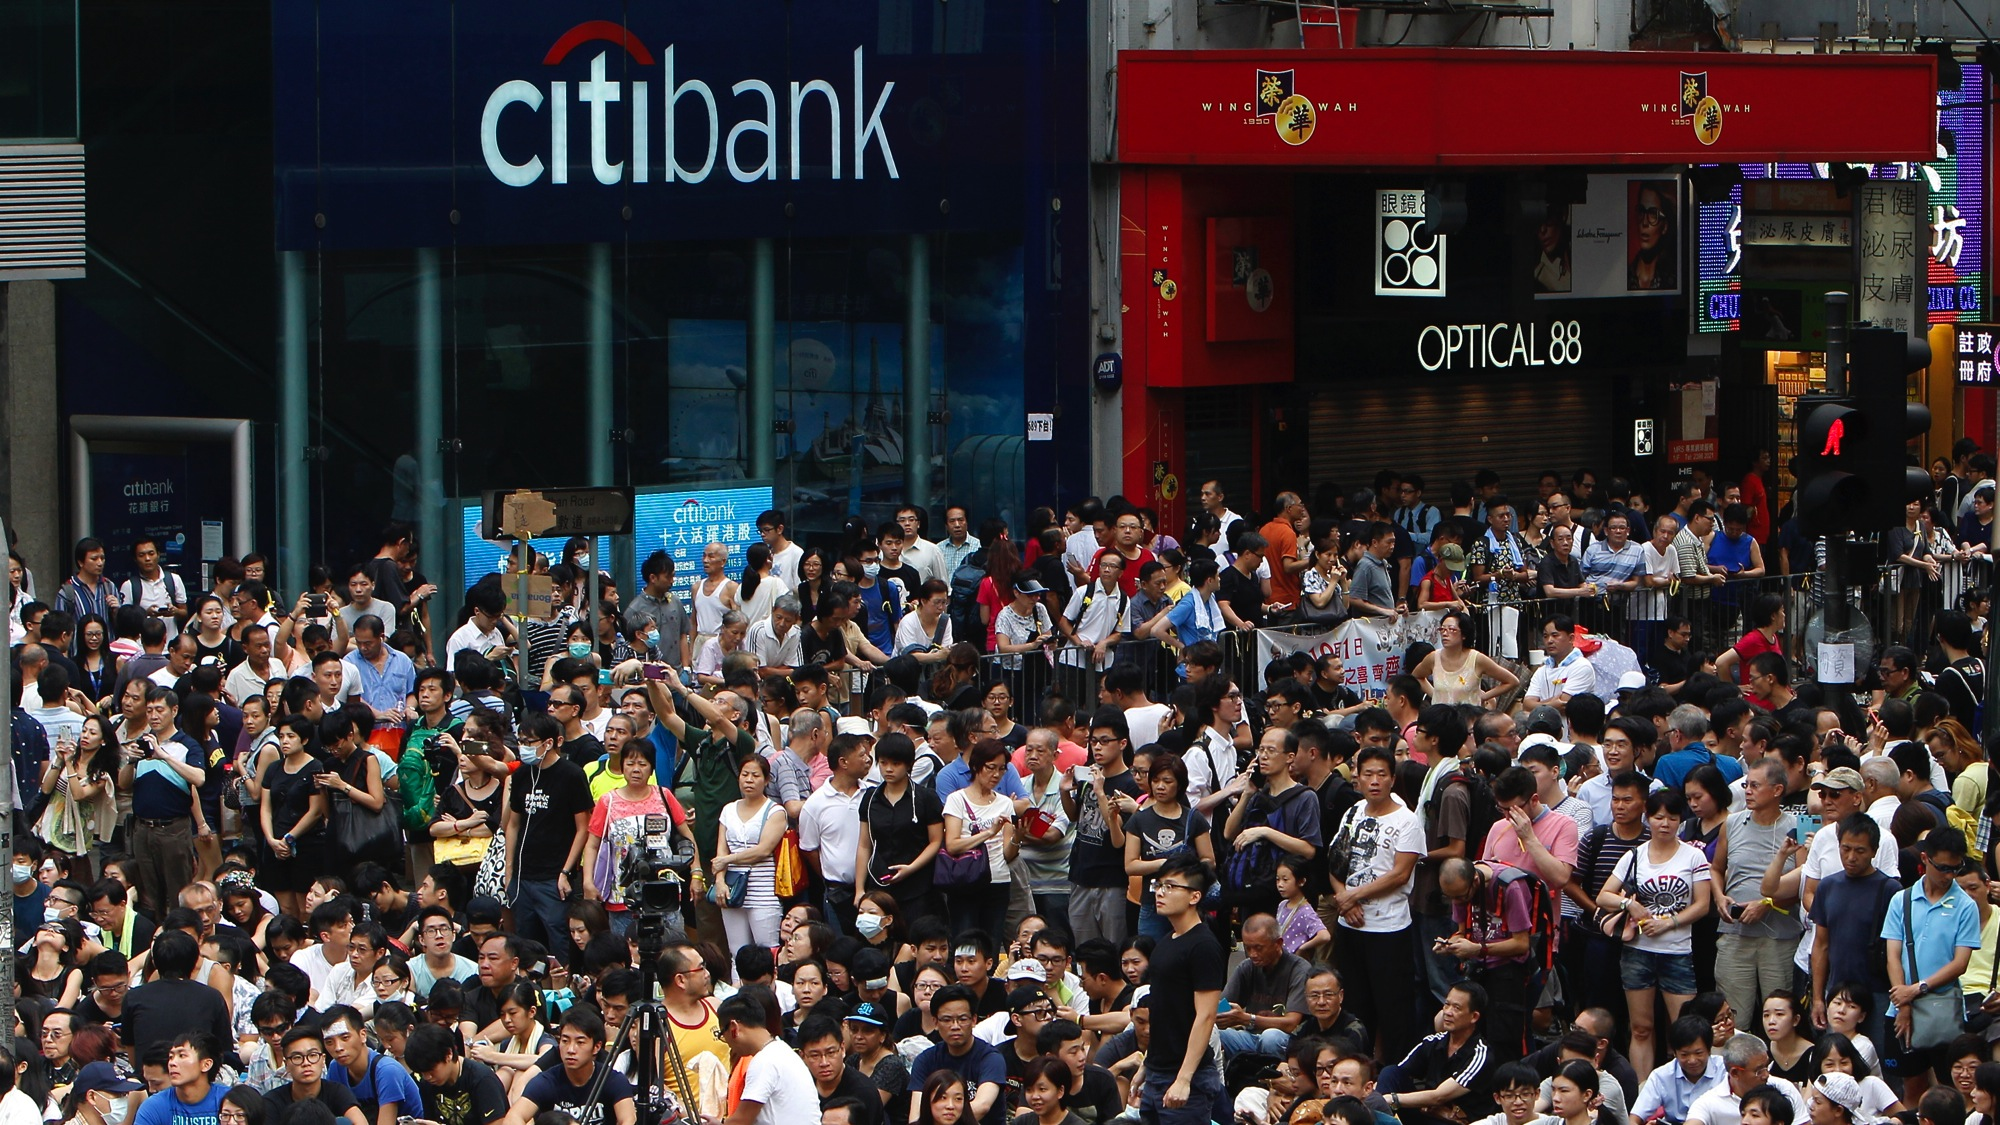 DATE IMPORTED:September 29, 2014A branch of Citibank is closed as thousands of protesters occupy a main street at Mongkok shopping district in Hong Kong September 29, 2014. Hong Kong's de facto central bank said that 44 branches, offices or ATMs of 23 banks had temporarily shut as of 3 p.m. on Monday amid growing civil unrest in the city. REUTERS/Liau Chung-ren (CHINA - Tags: POLITICS BUSINESS)